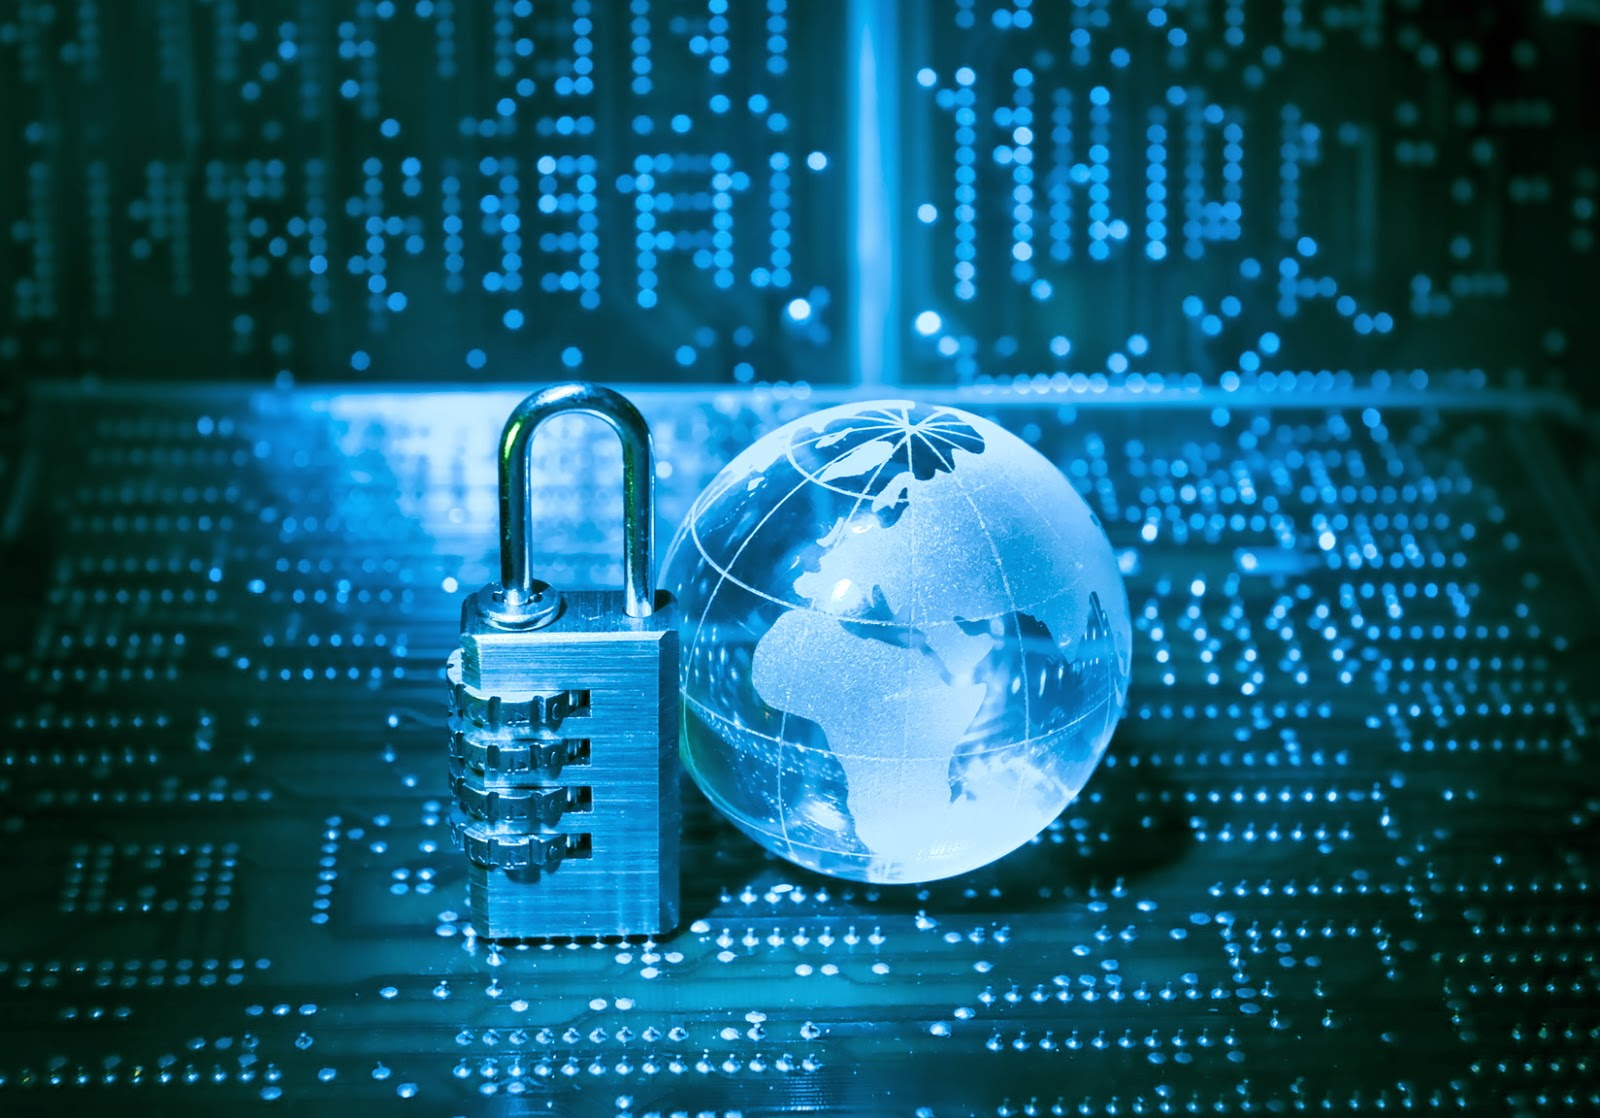 information security policy world setting the standards for privacy online The following policies outline procedures that govern interactions with confidential or sensitive information at florida state university (fsu) these policies are established to strengthen data security and privacy requirements.